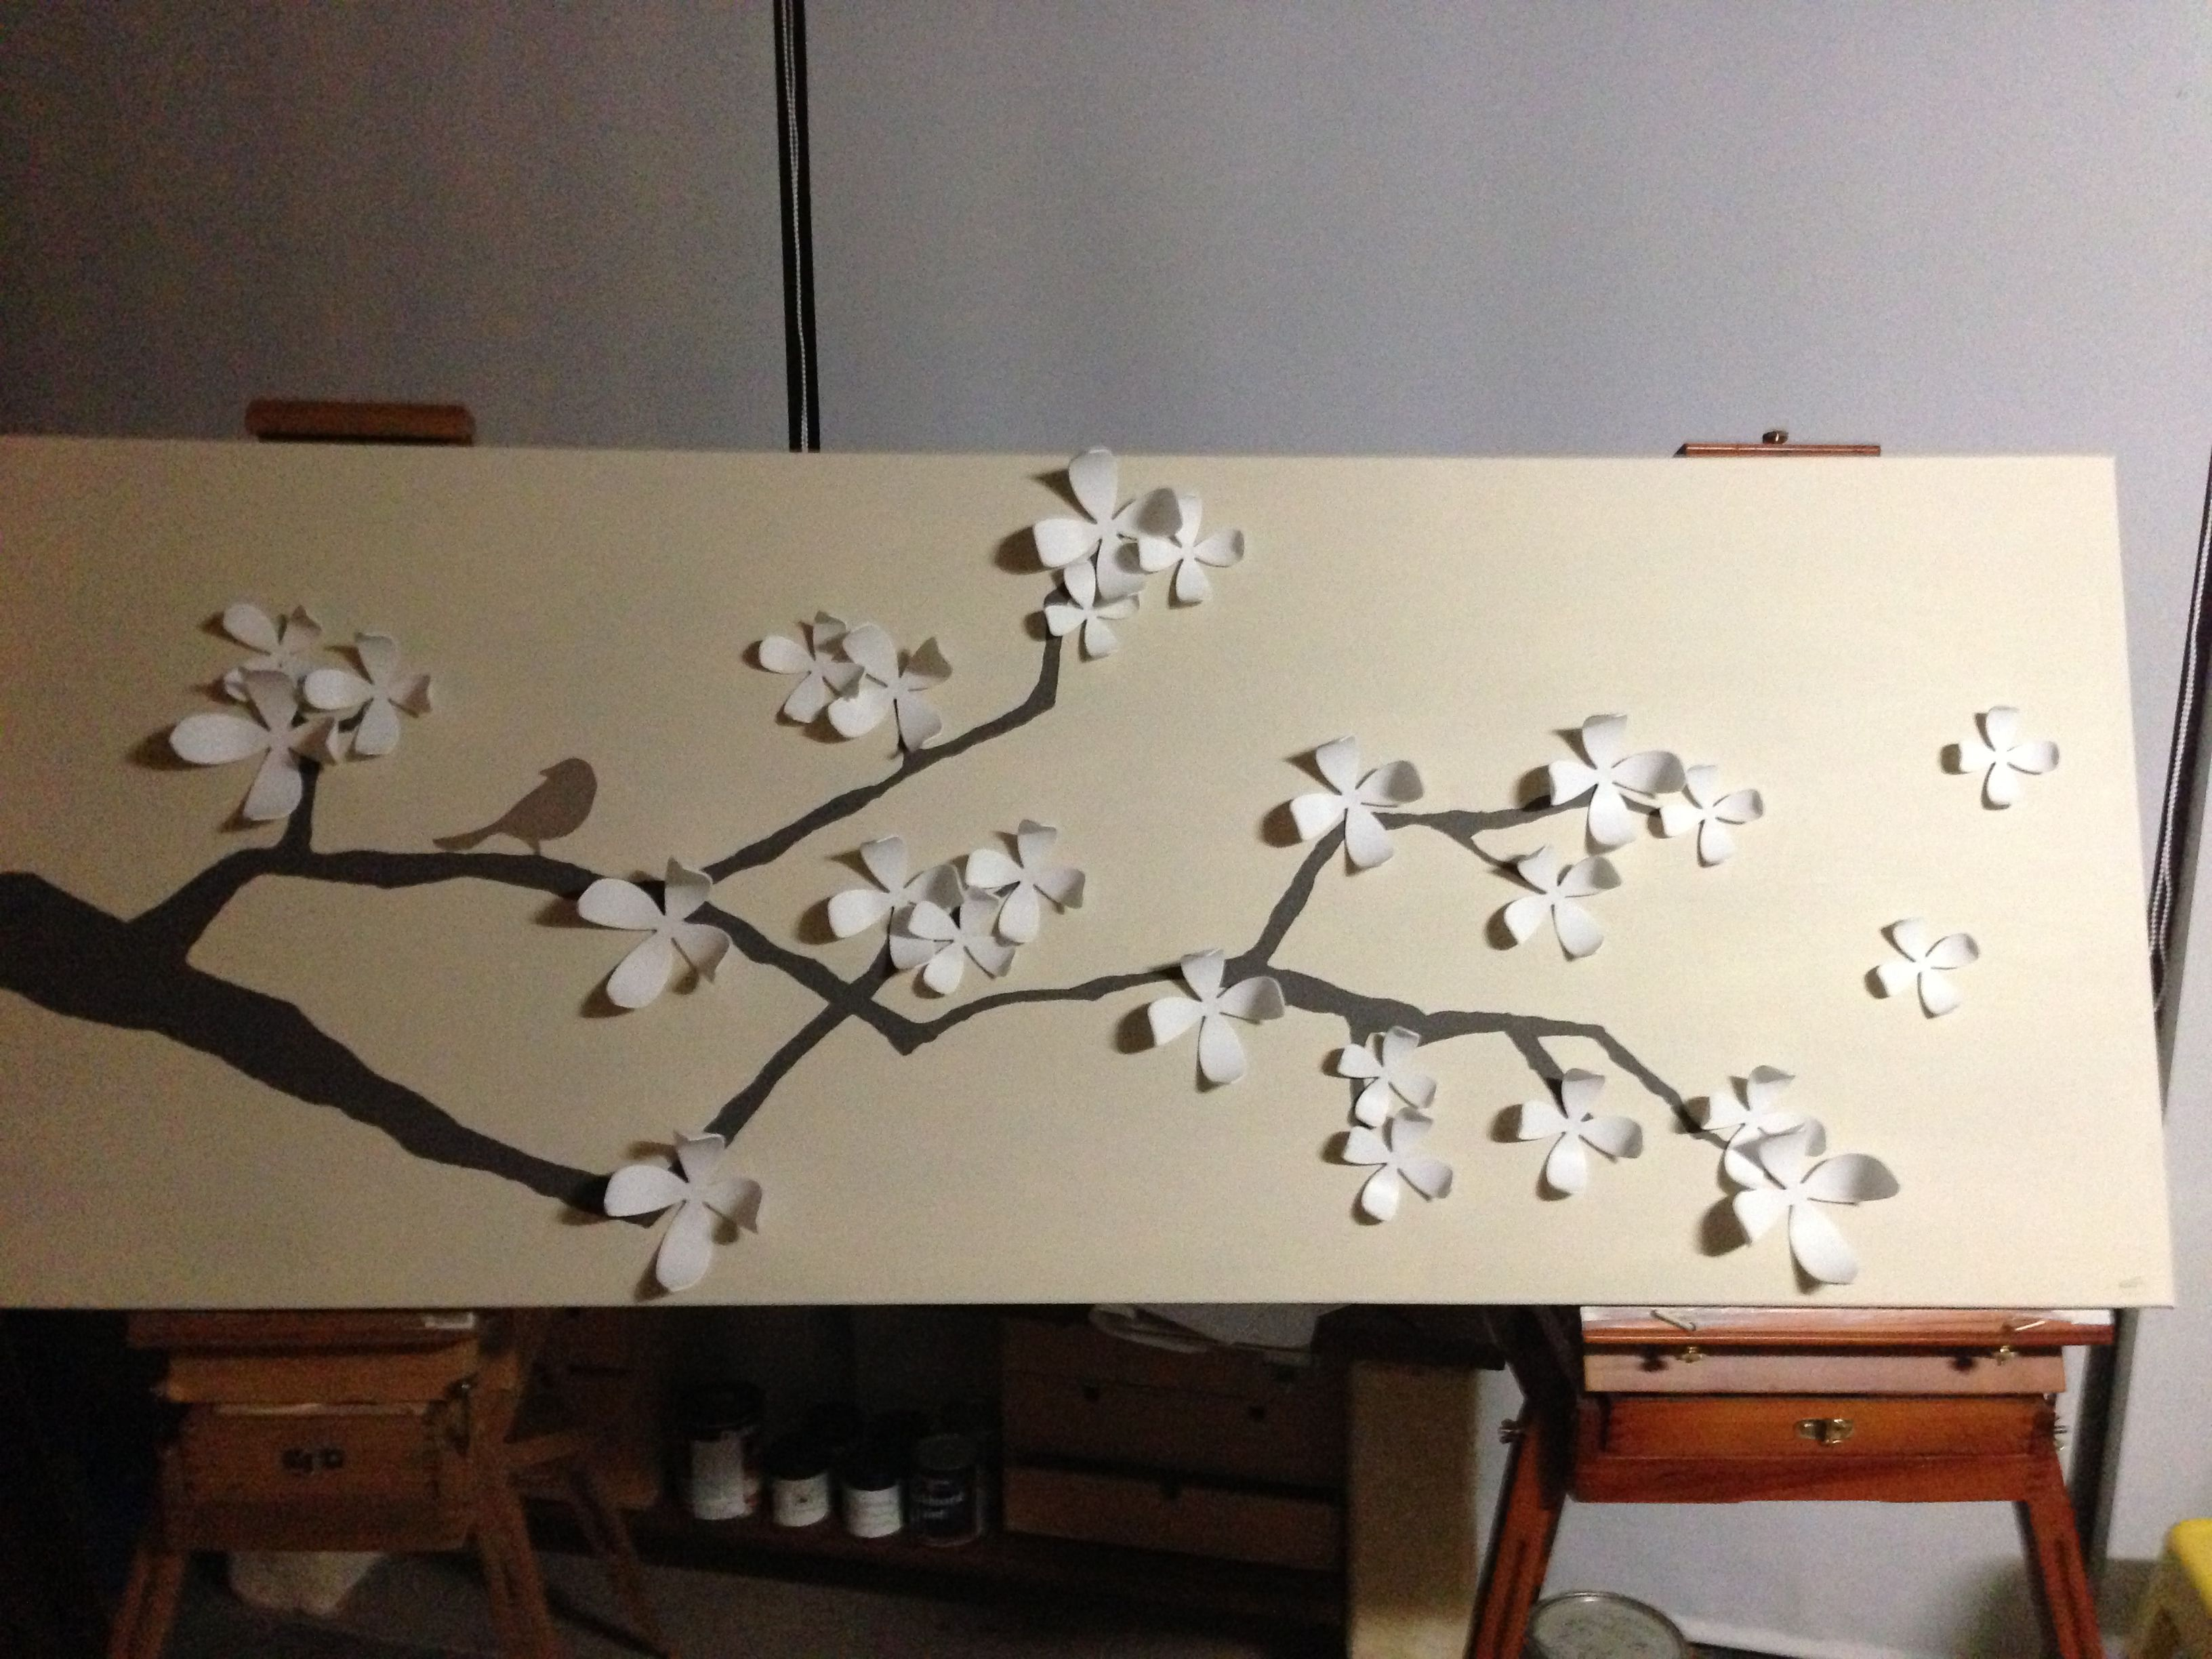 umbra wall flowers on canvas painted as cherry blossom branch for  - umbra wall flowers on canvas painted as cherry blossom branch for my sister